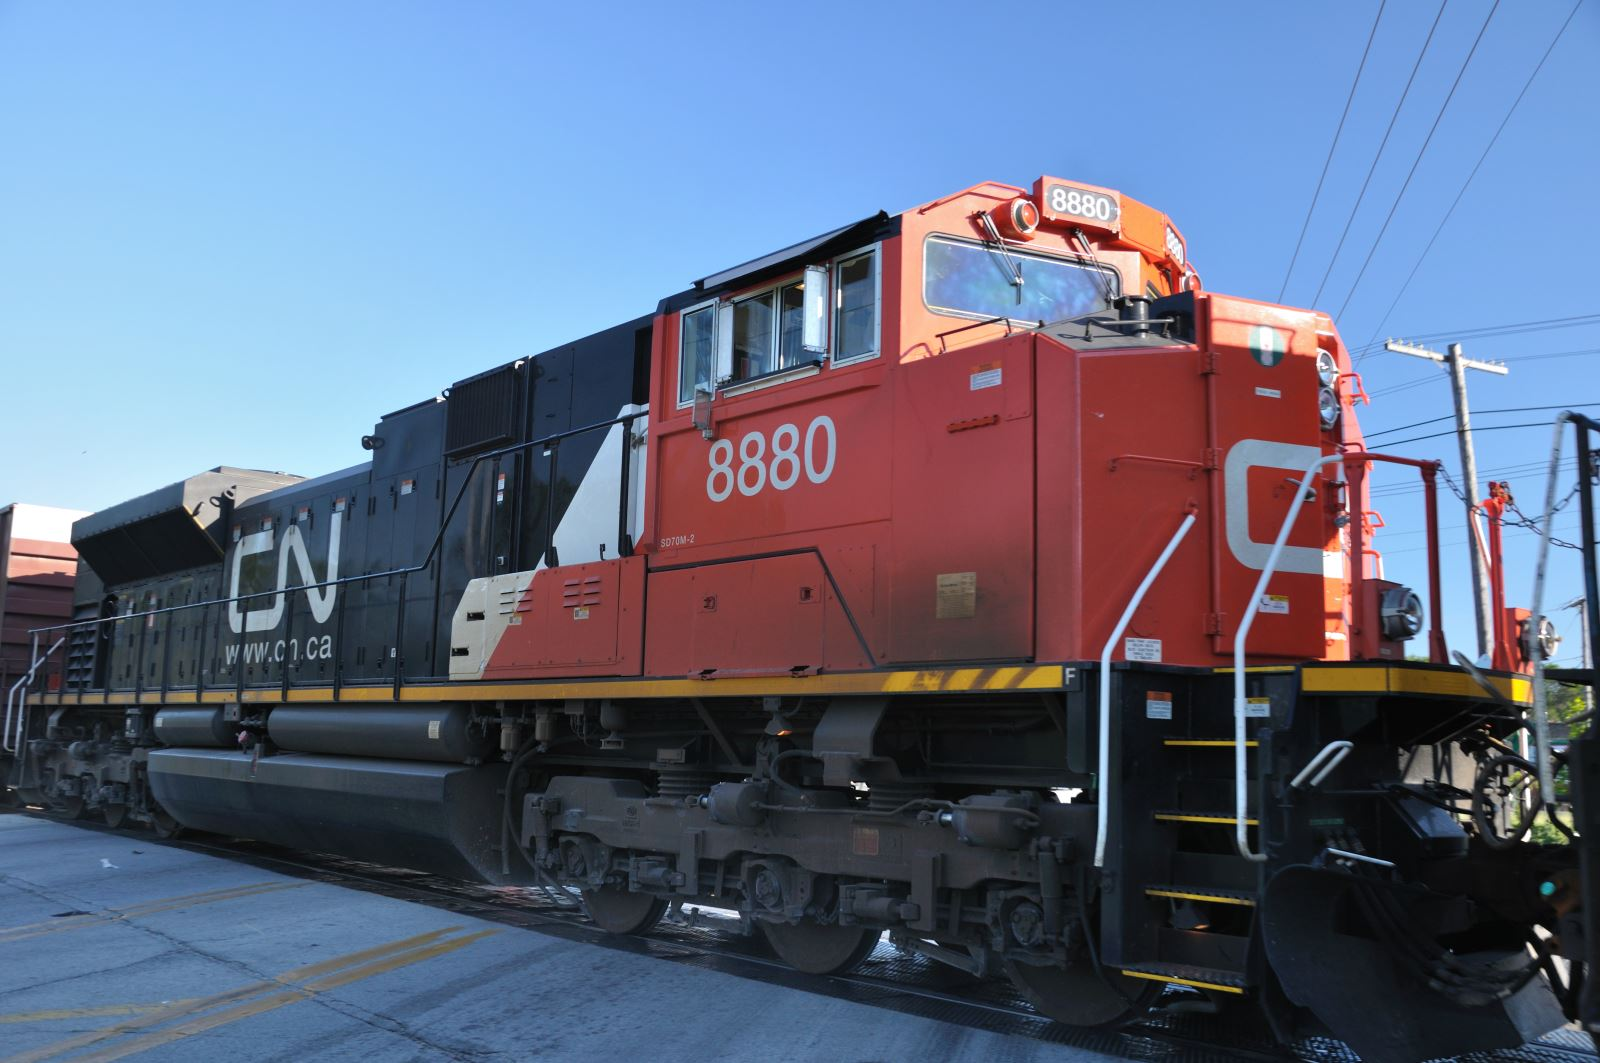 ​Canadian Pacific refuses to pay $50,000 fine and will appeal